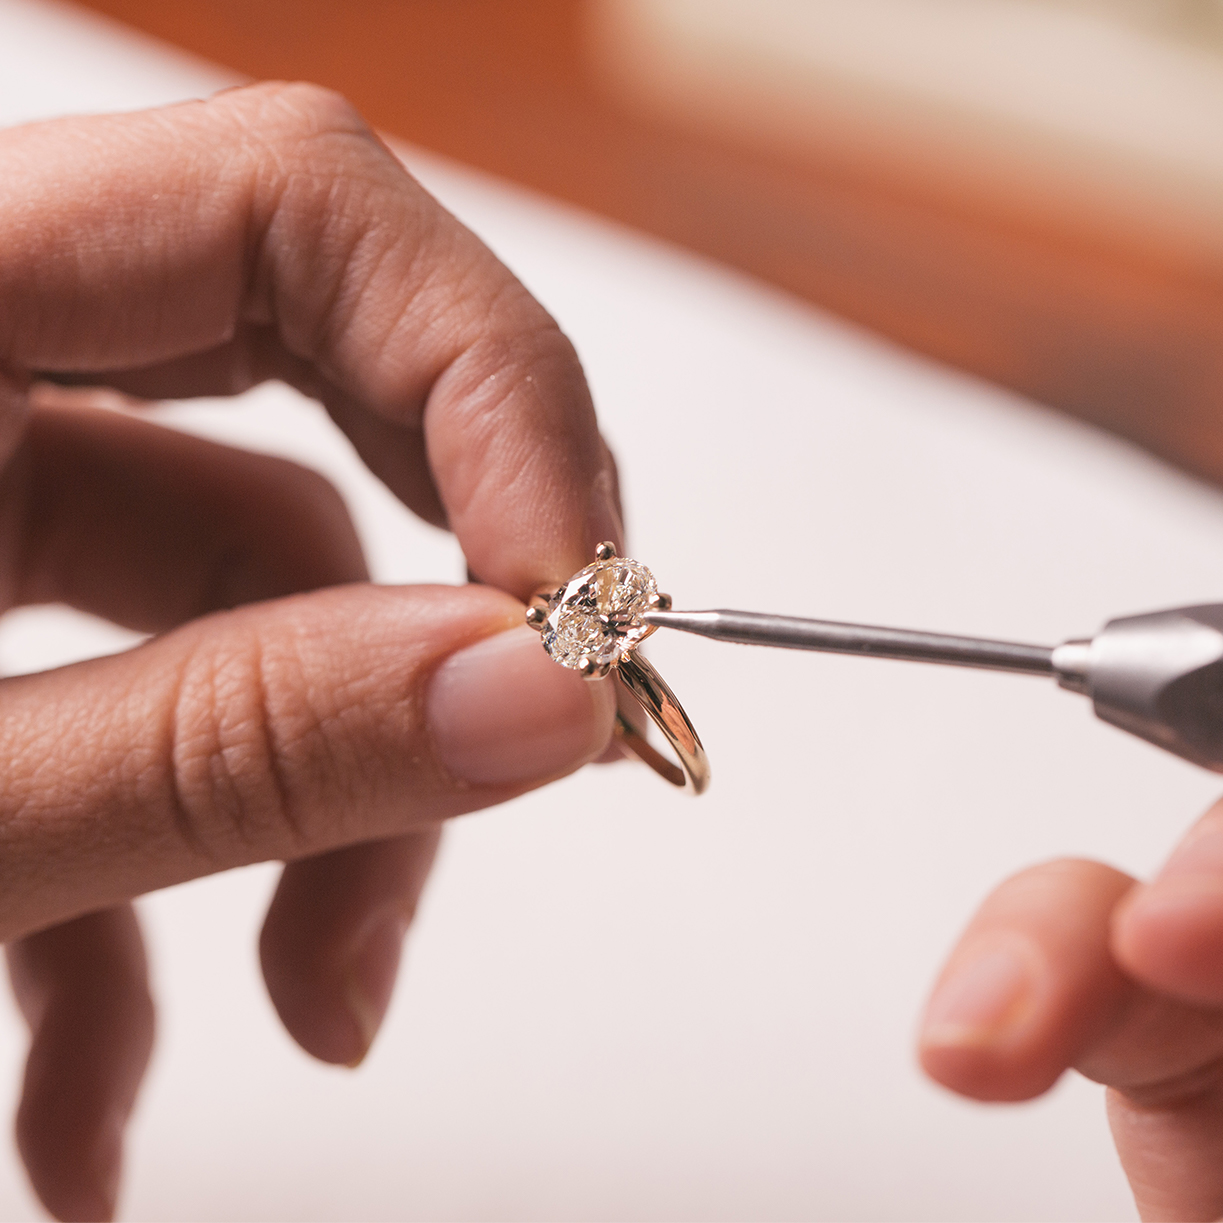 How To Buy A Lab Diamond Ring Engagement Ring Education With Clarity